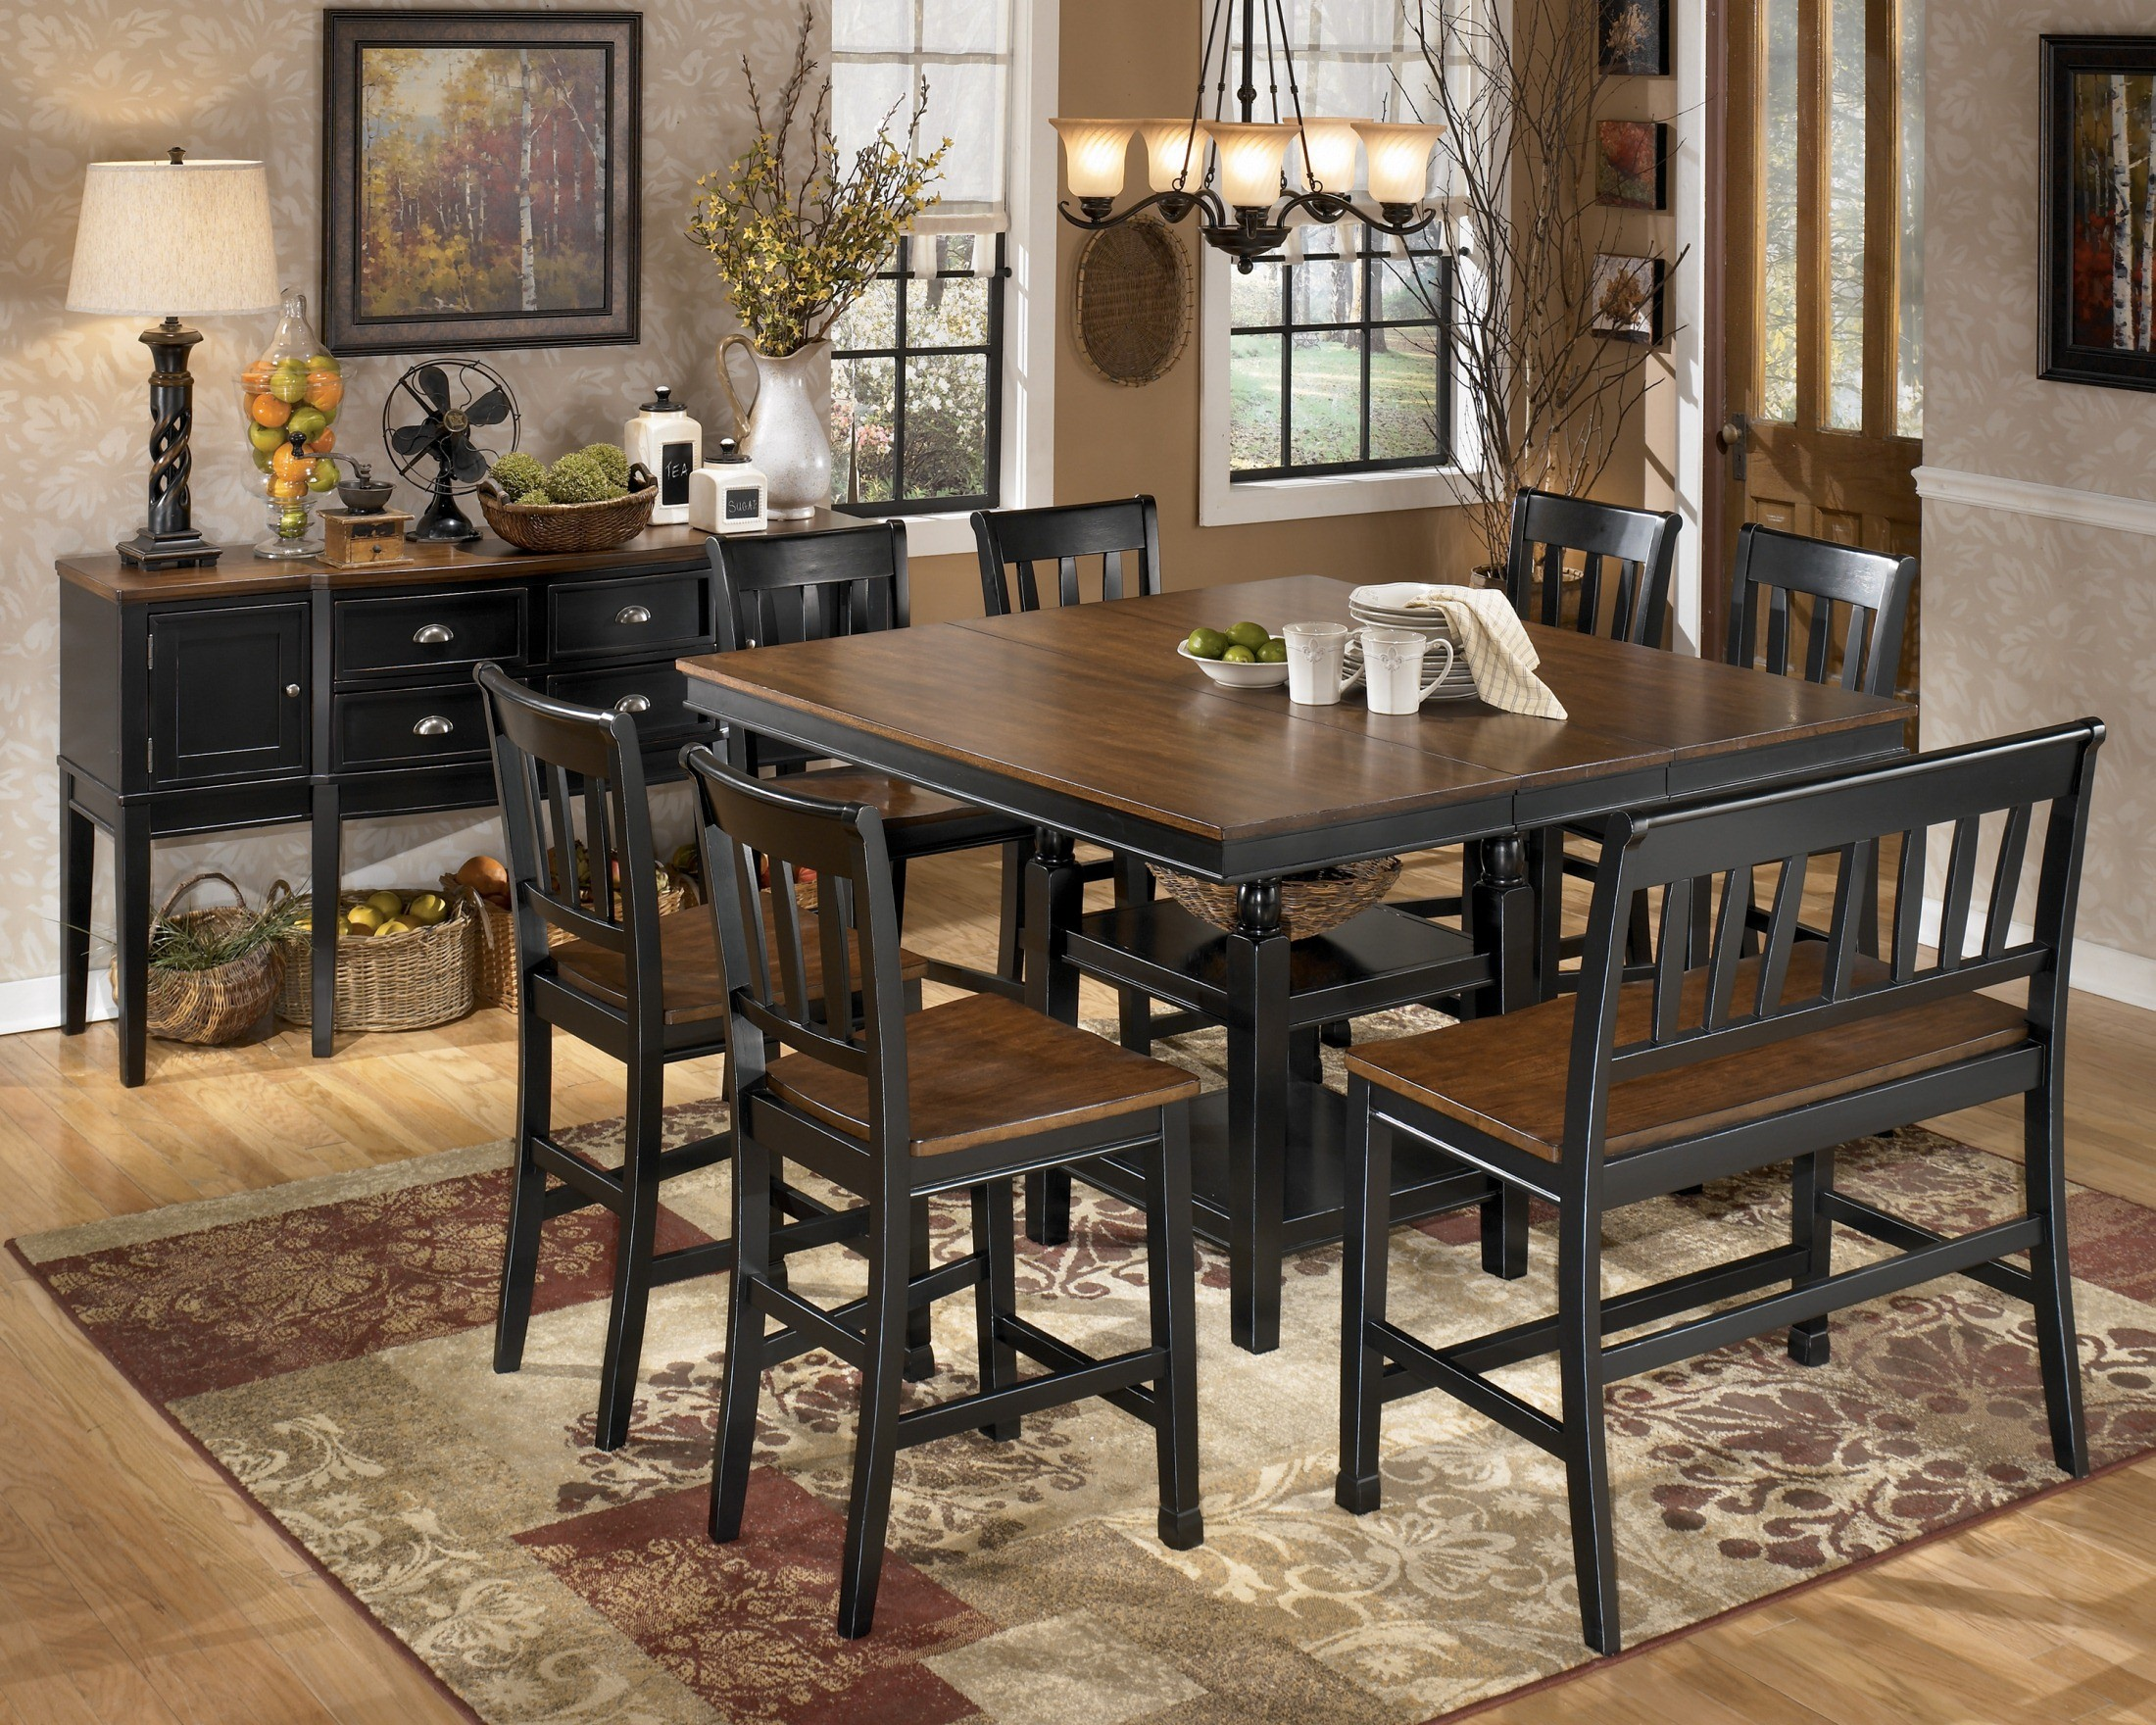 owingsville square counter height extendable dining room set from ashley d580 coleman furniture. Black Bedroom Furniture Sets. Home Design Ideas